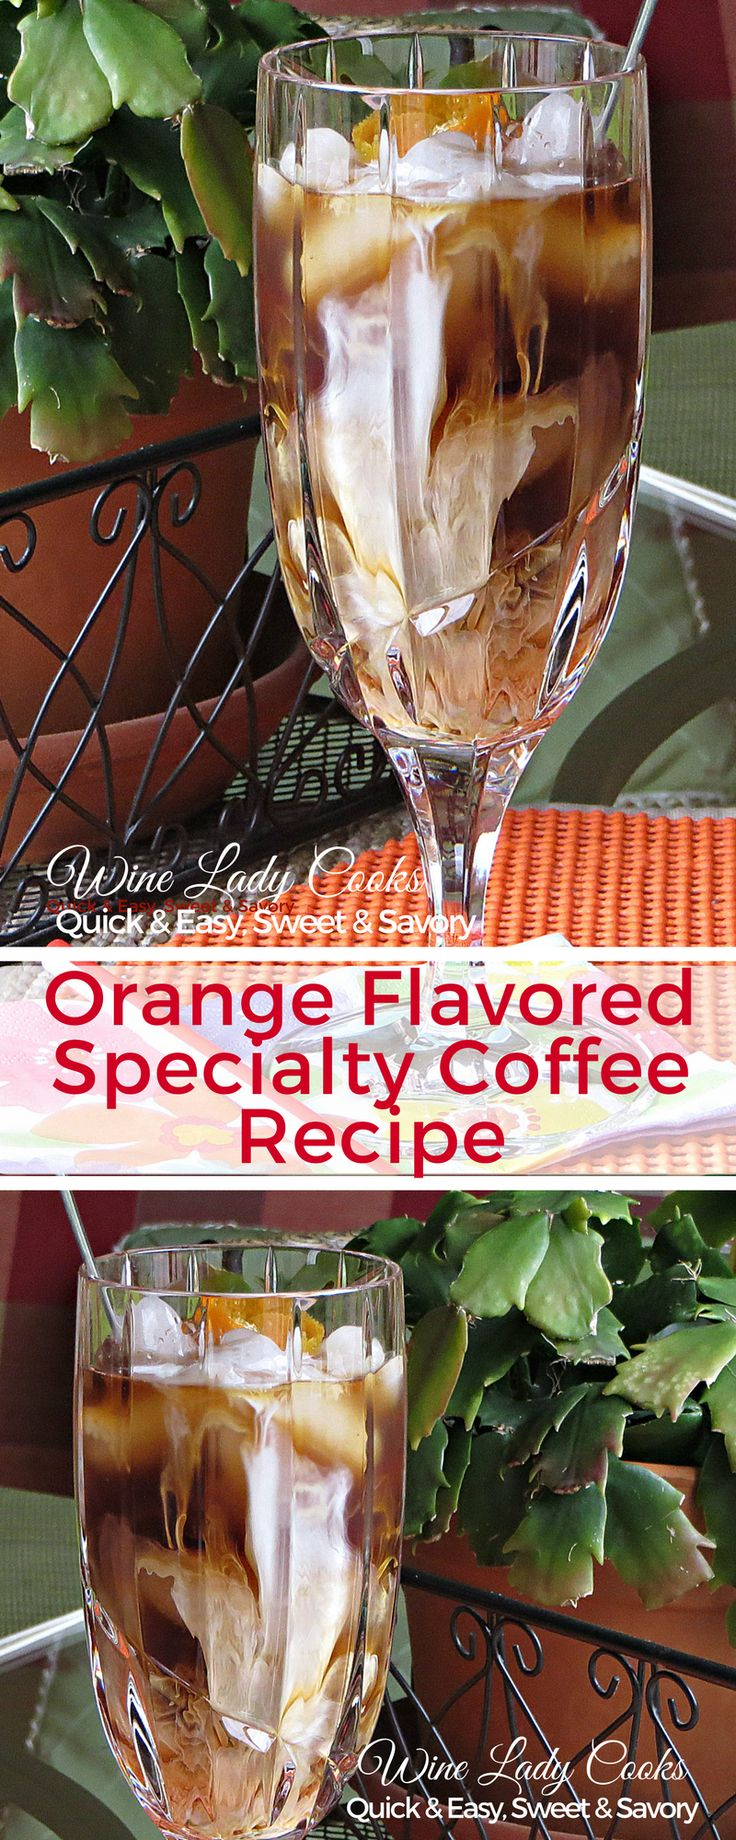 Orange Flavored Specialty Coffee Recipe can be served hot, or cold. A delicious specialty coffee to add to your brunch menu, Mother's Day or Father's Day. Click thru for easy recipe. #coffee #drinks #icedcoffee #orangeflavored #coffee